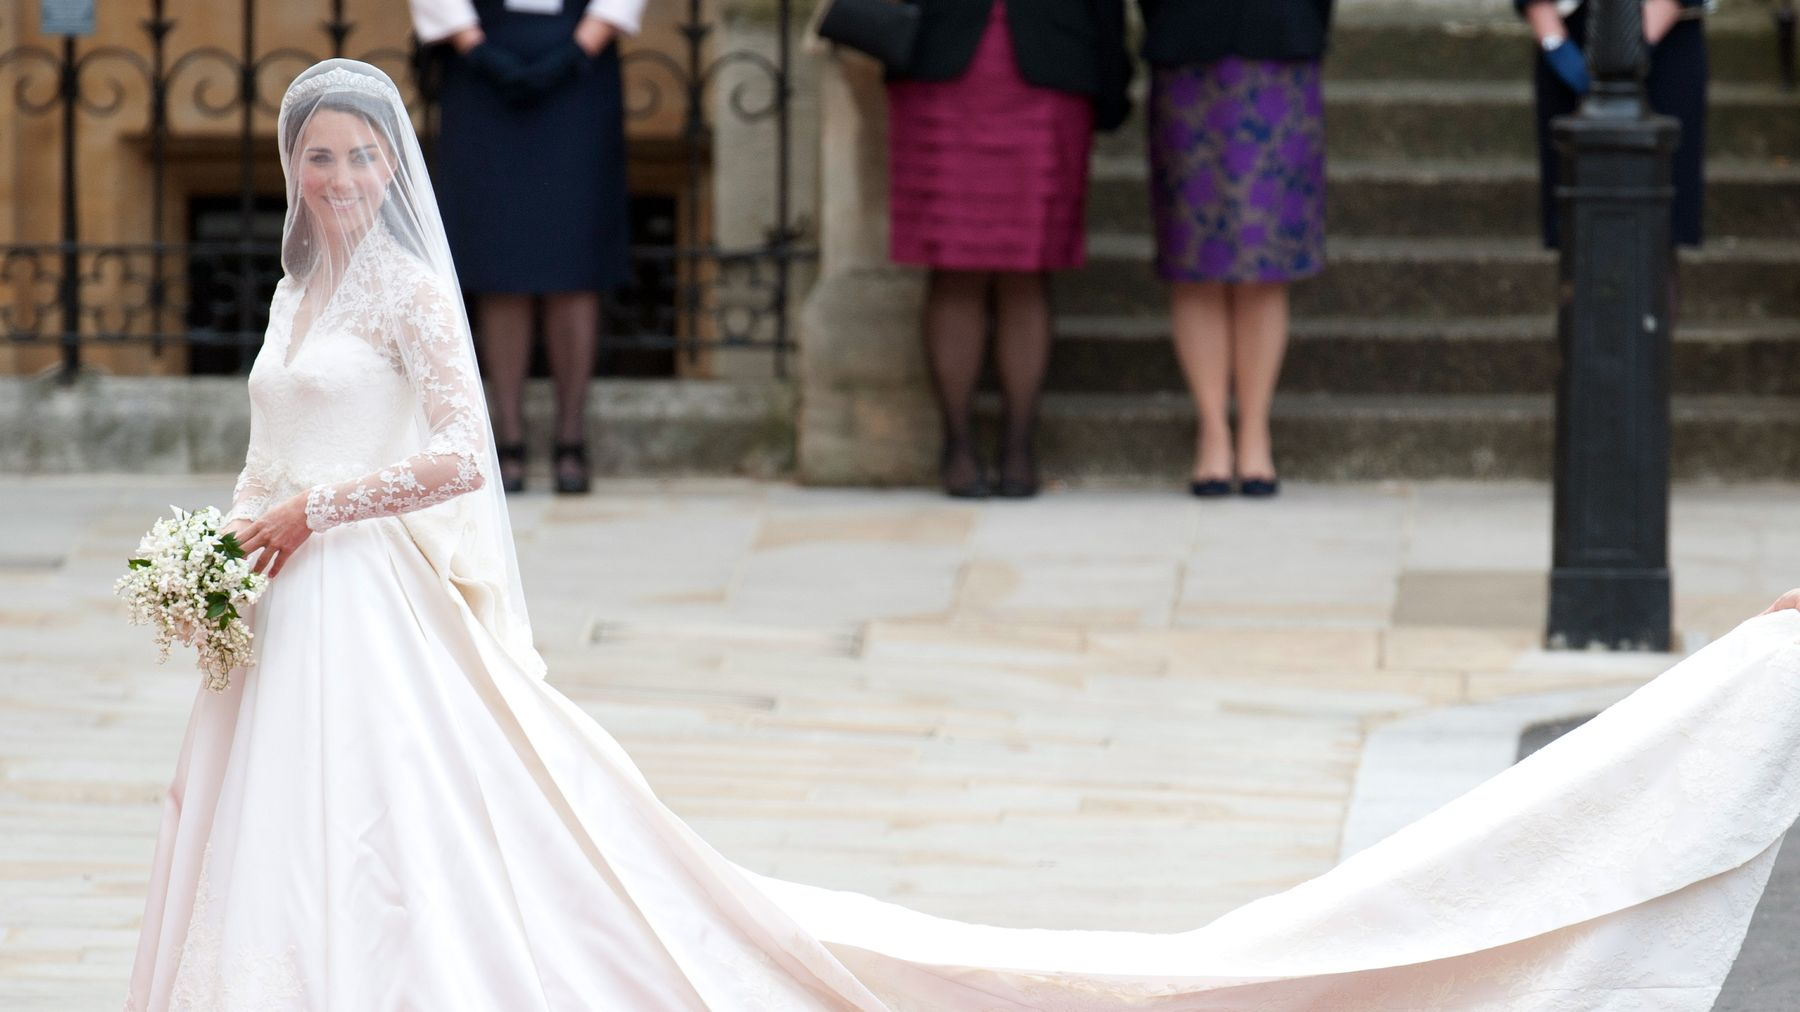 43a1ee5c61dc Kate Middleton wearing Alexander McQueen on her wedding day © Getty Images